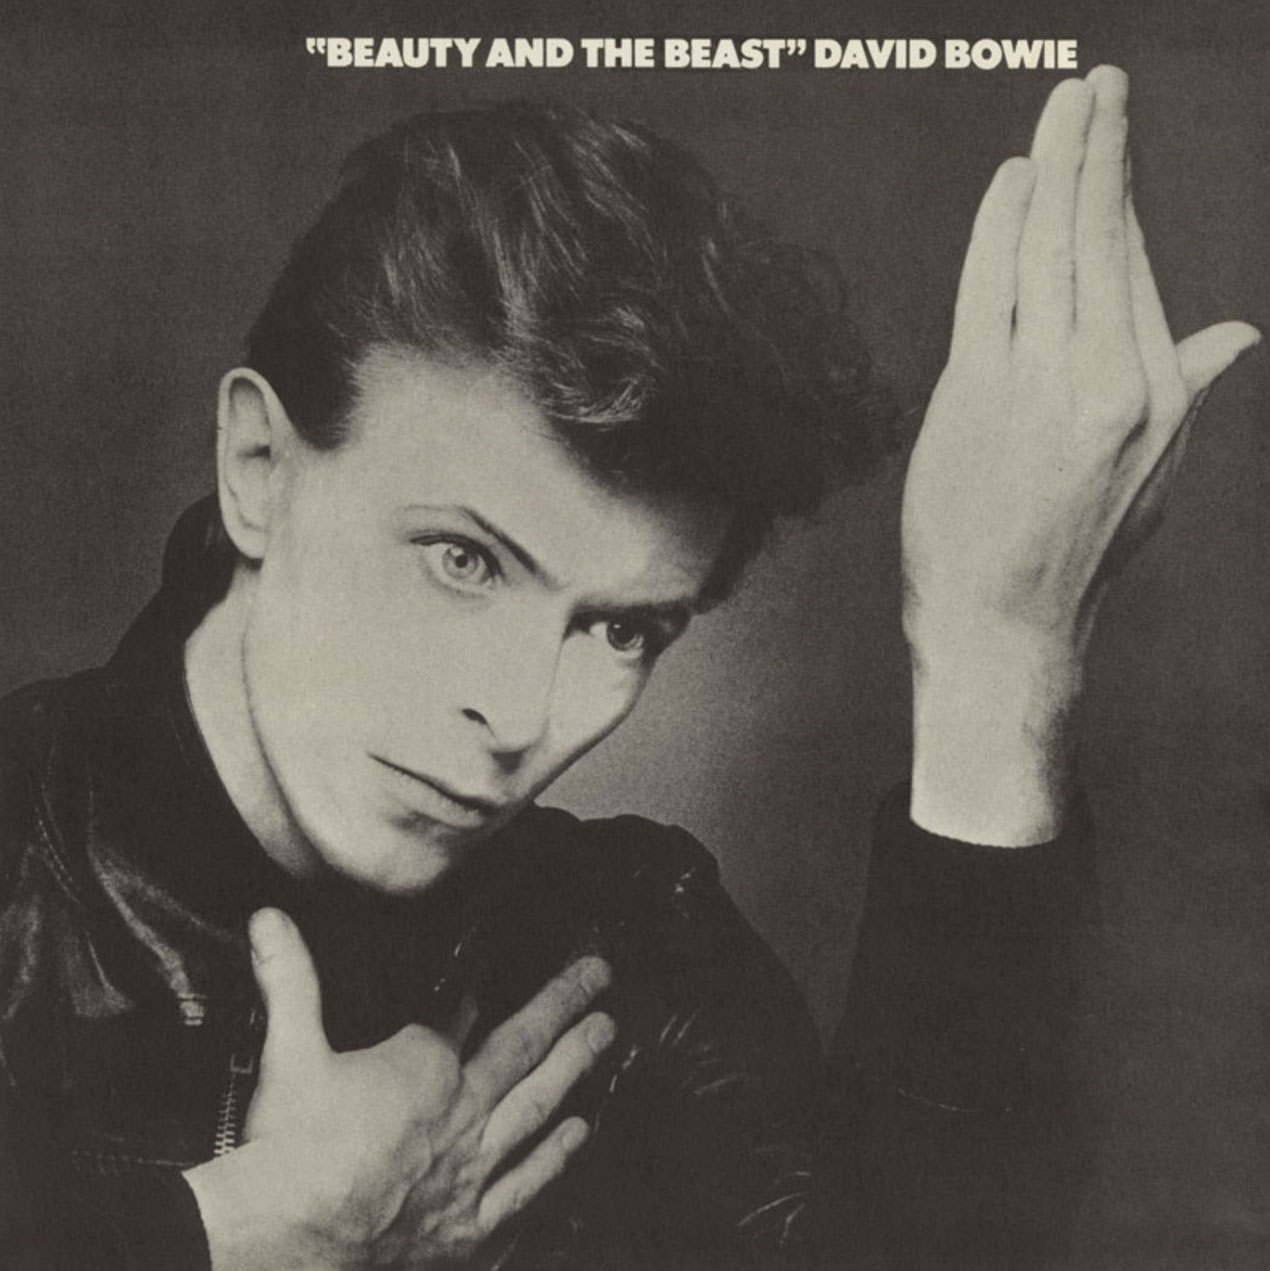 David Bowie - Beauty And The Beast - UK single front cover